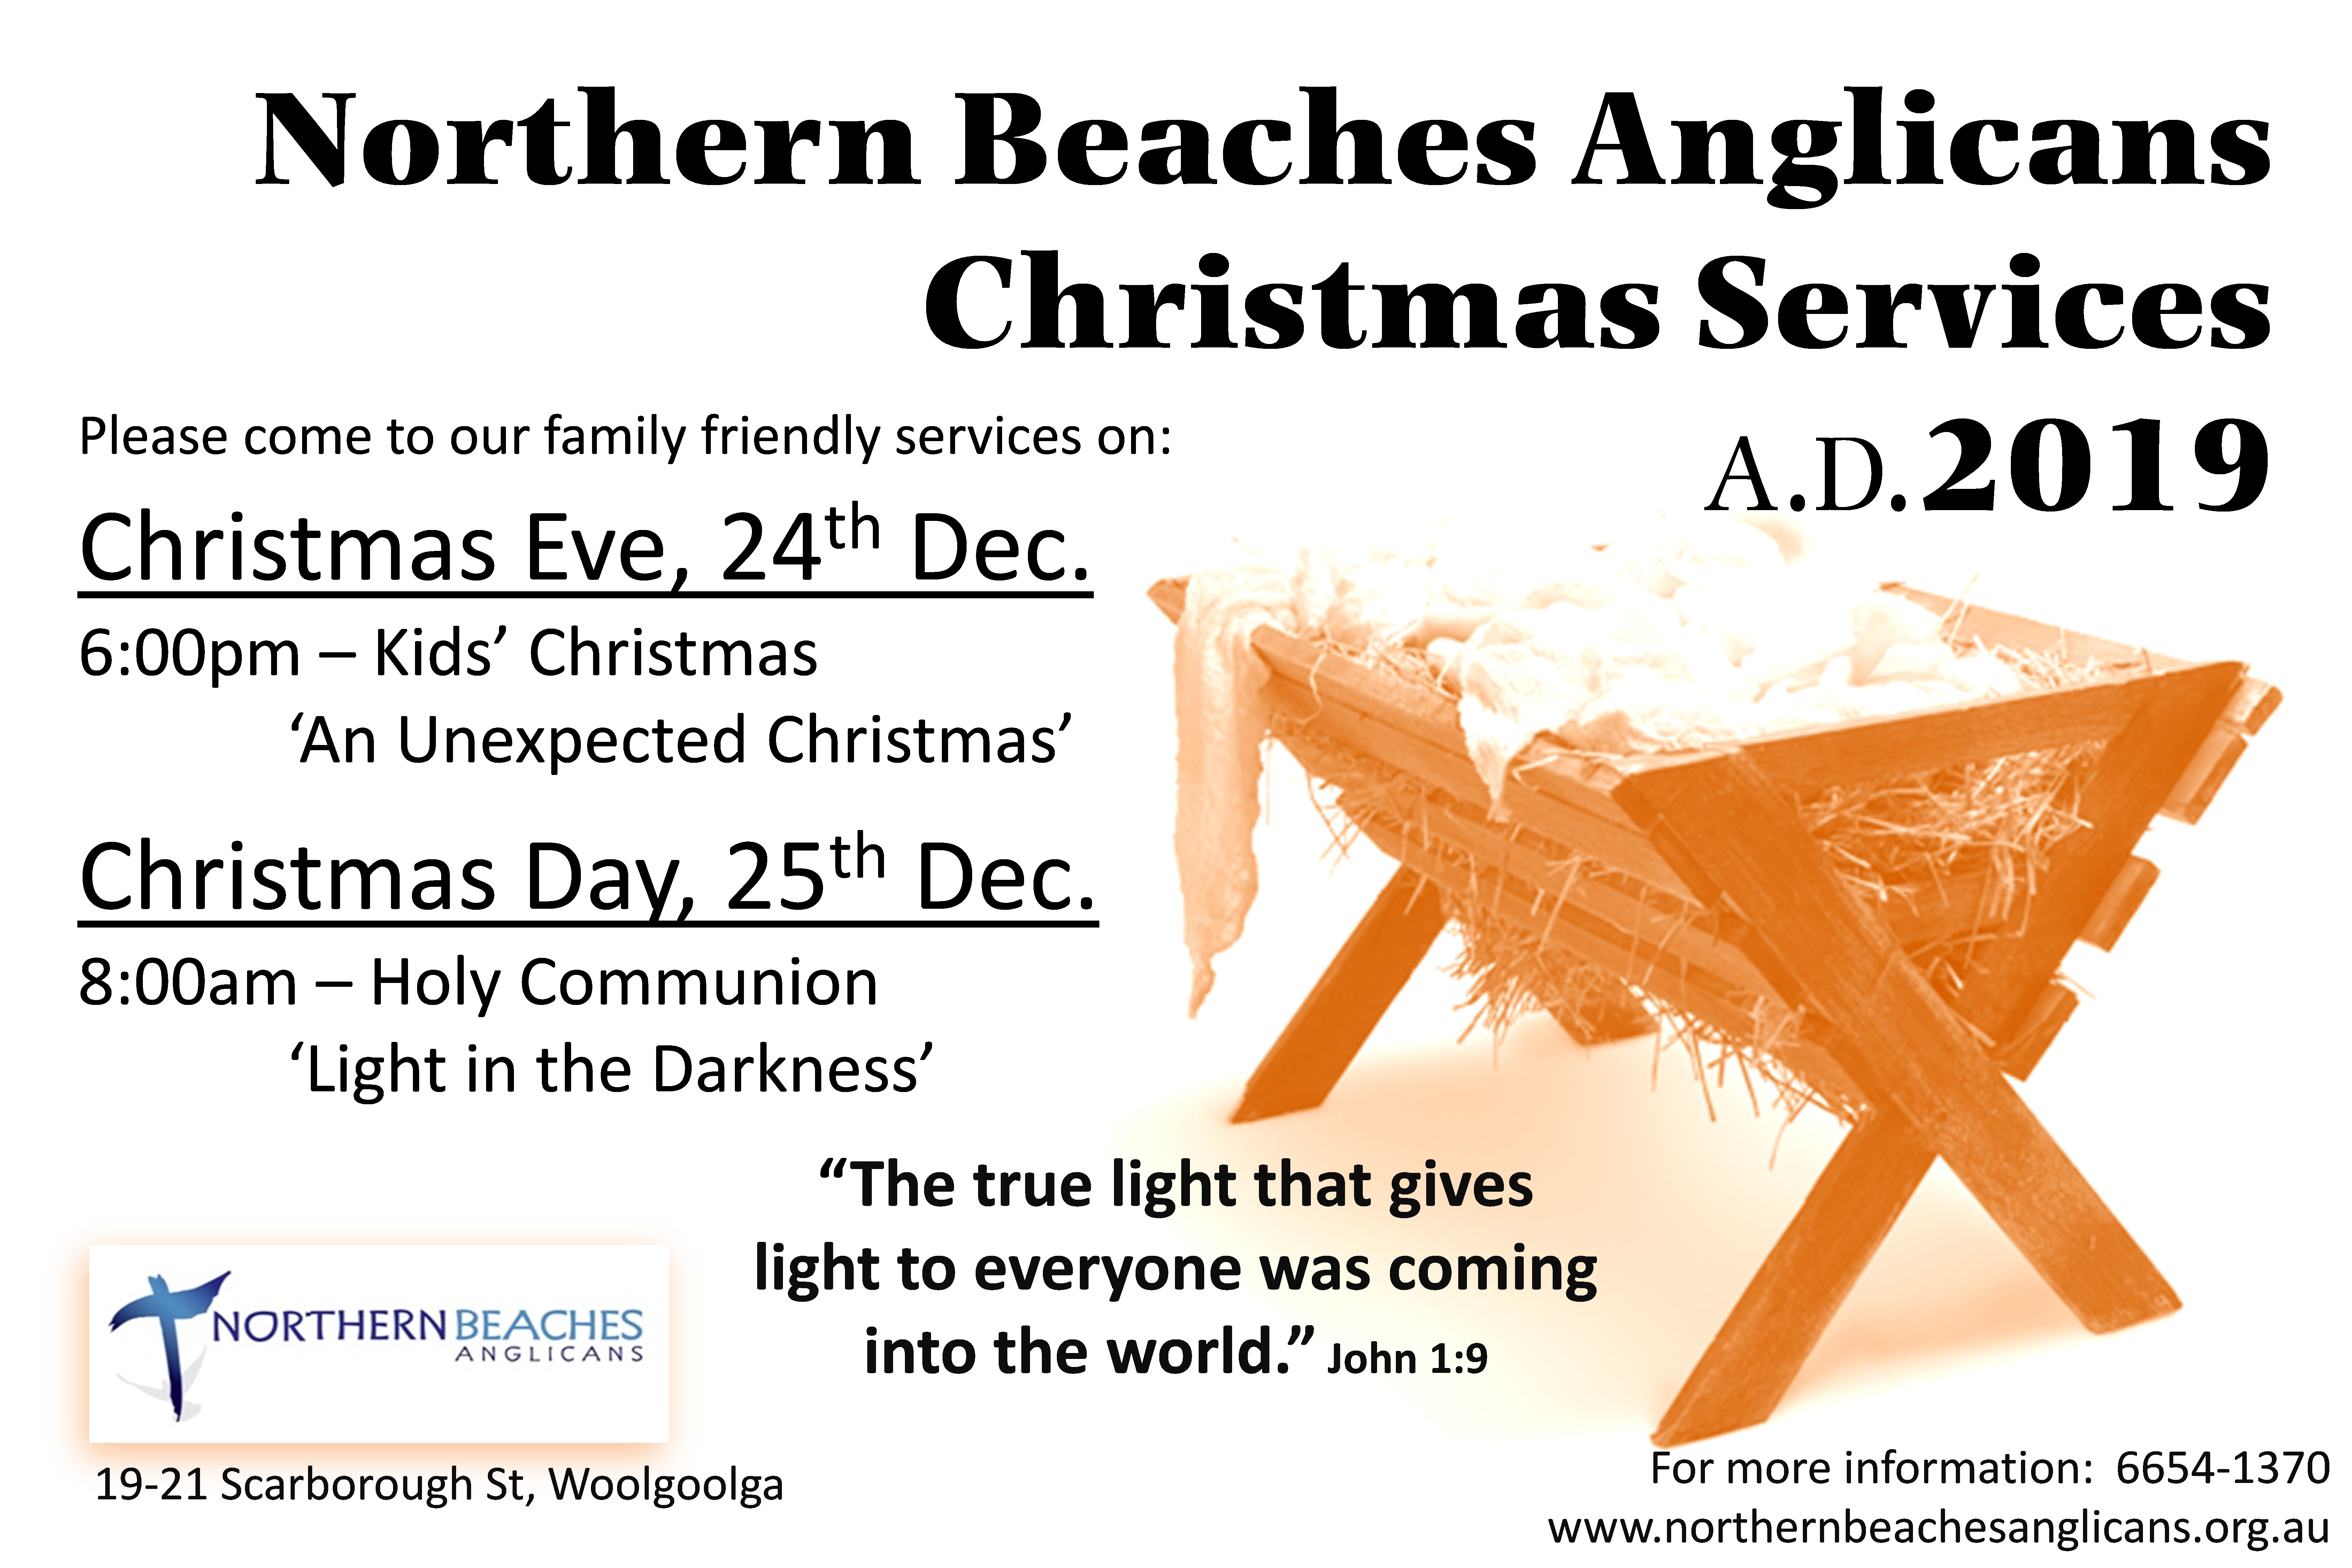 2019-Parish-Christmas-Service-Flyer